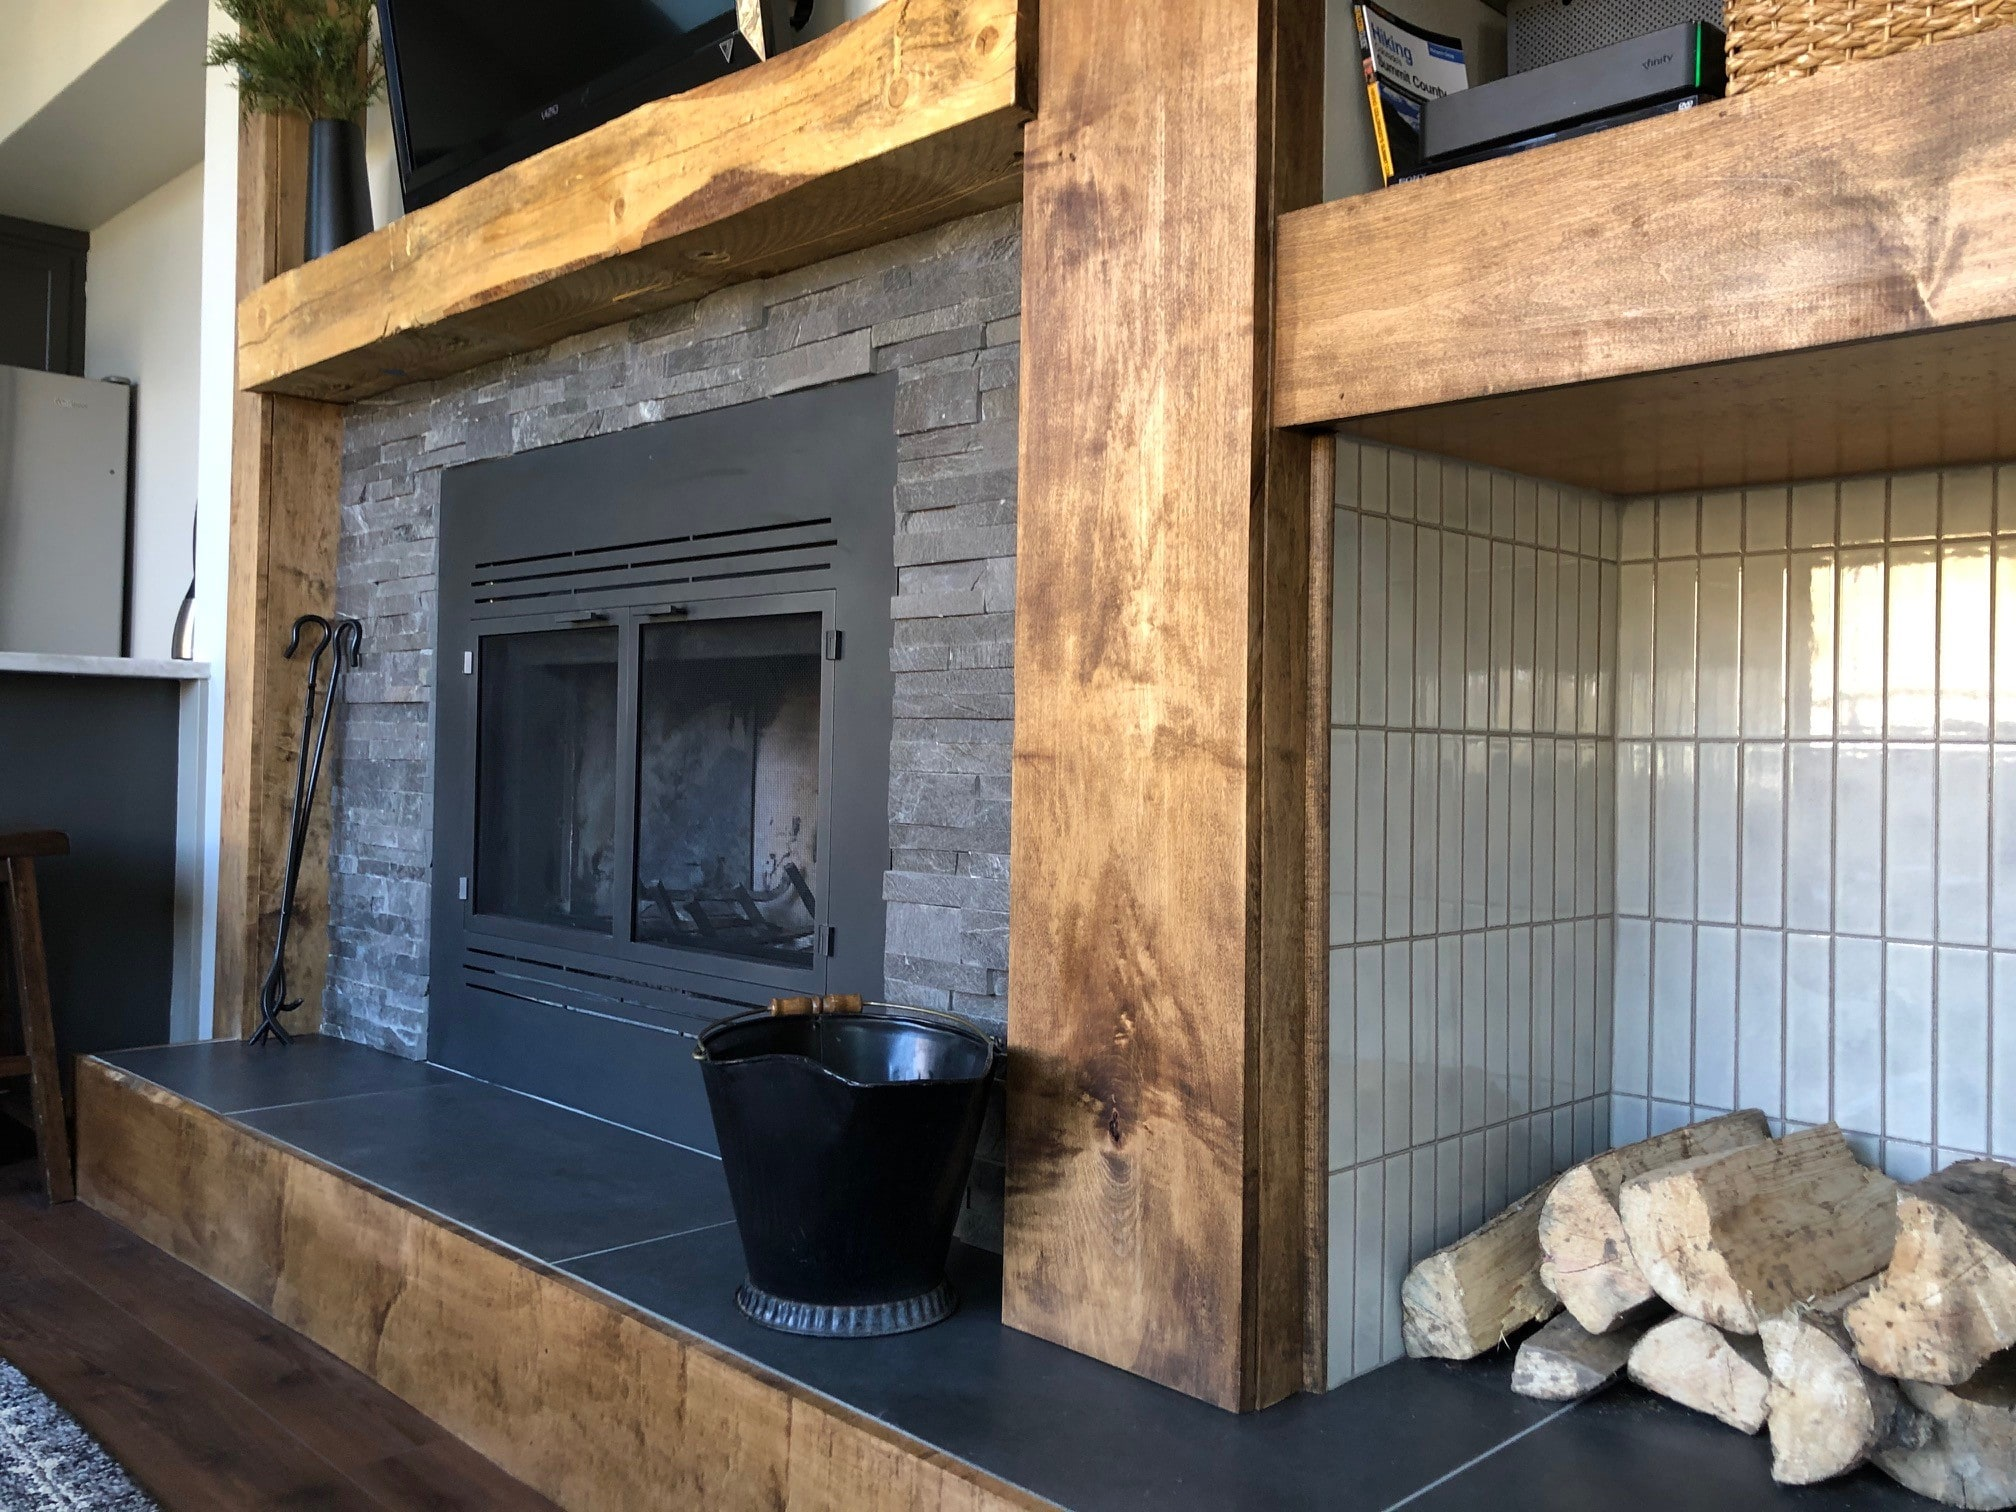 Norstone Charcoal Rock Panels surrounding black metal fireplace insert in Colorado mountain ski condo